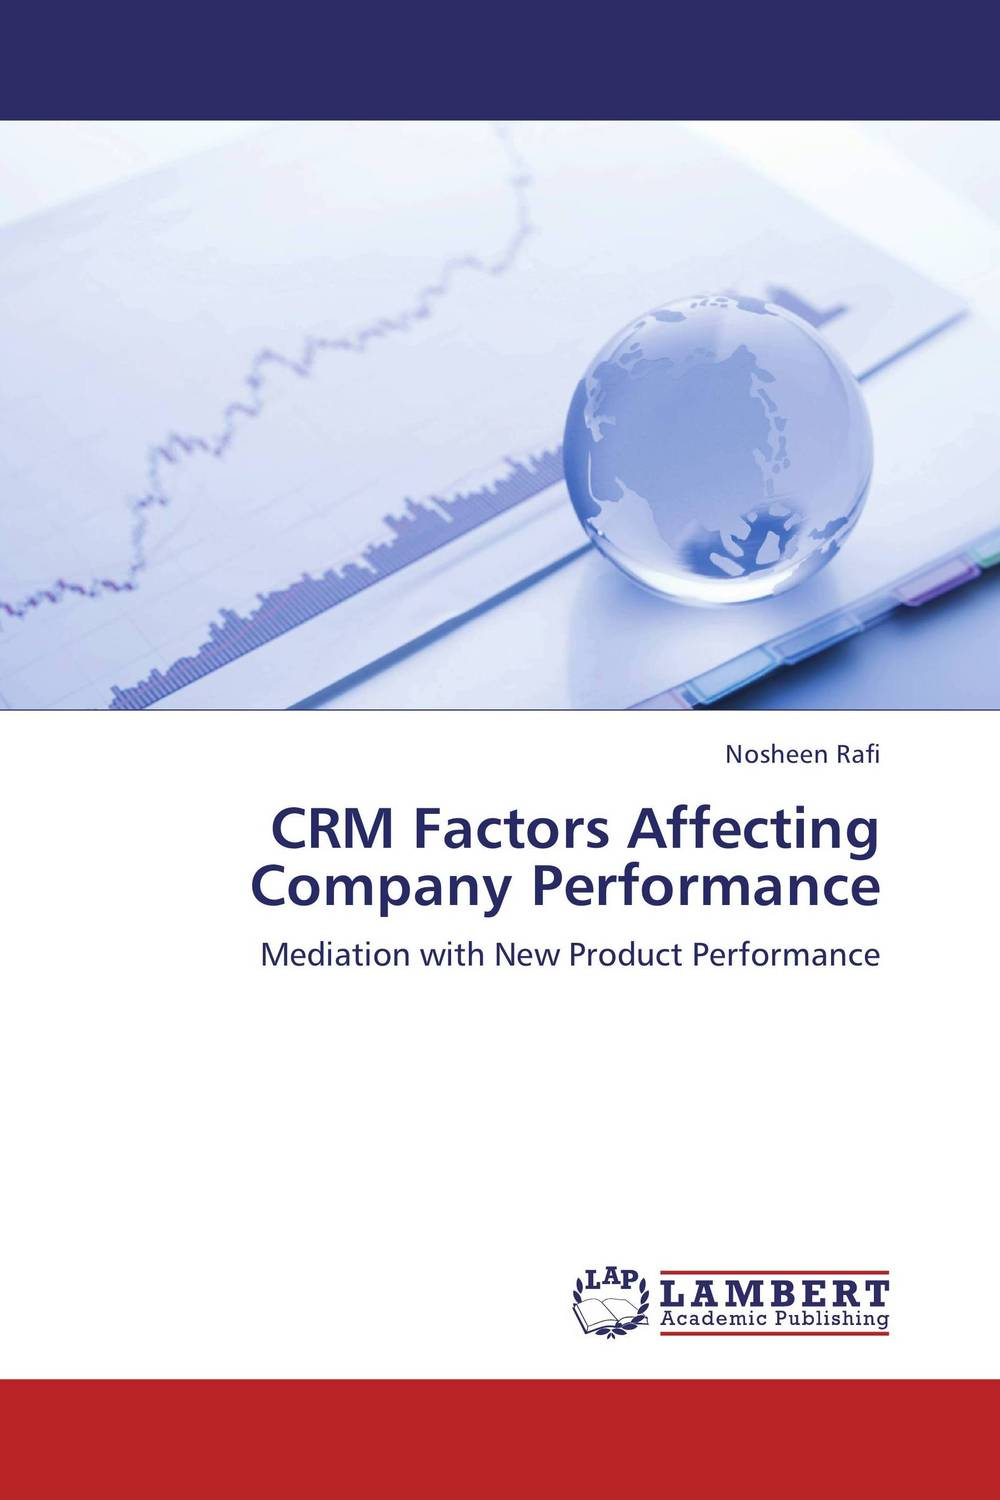 CRM Factors Affecting Company Performance